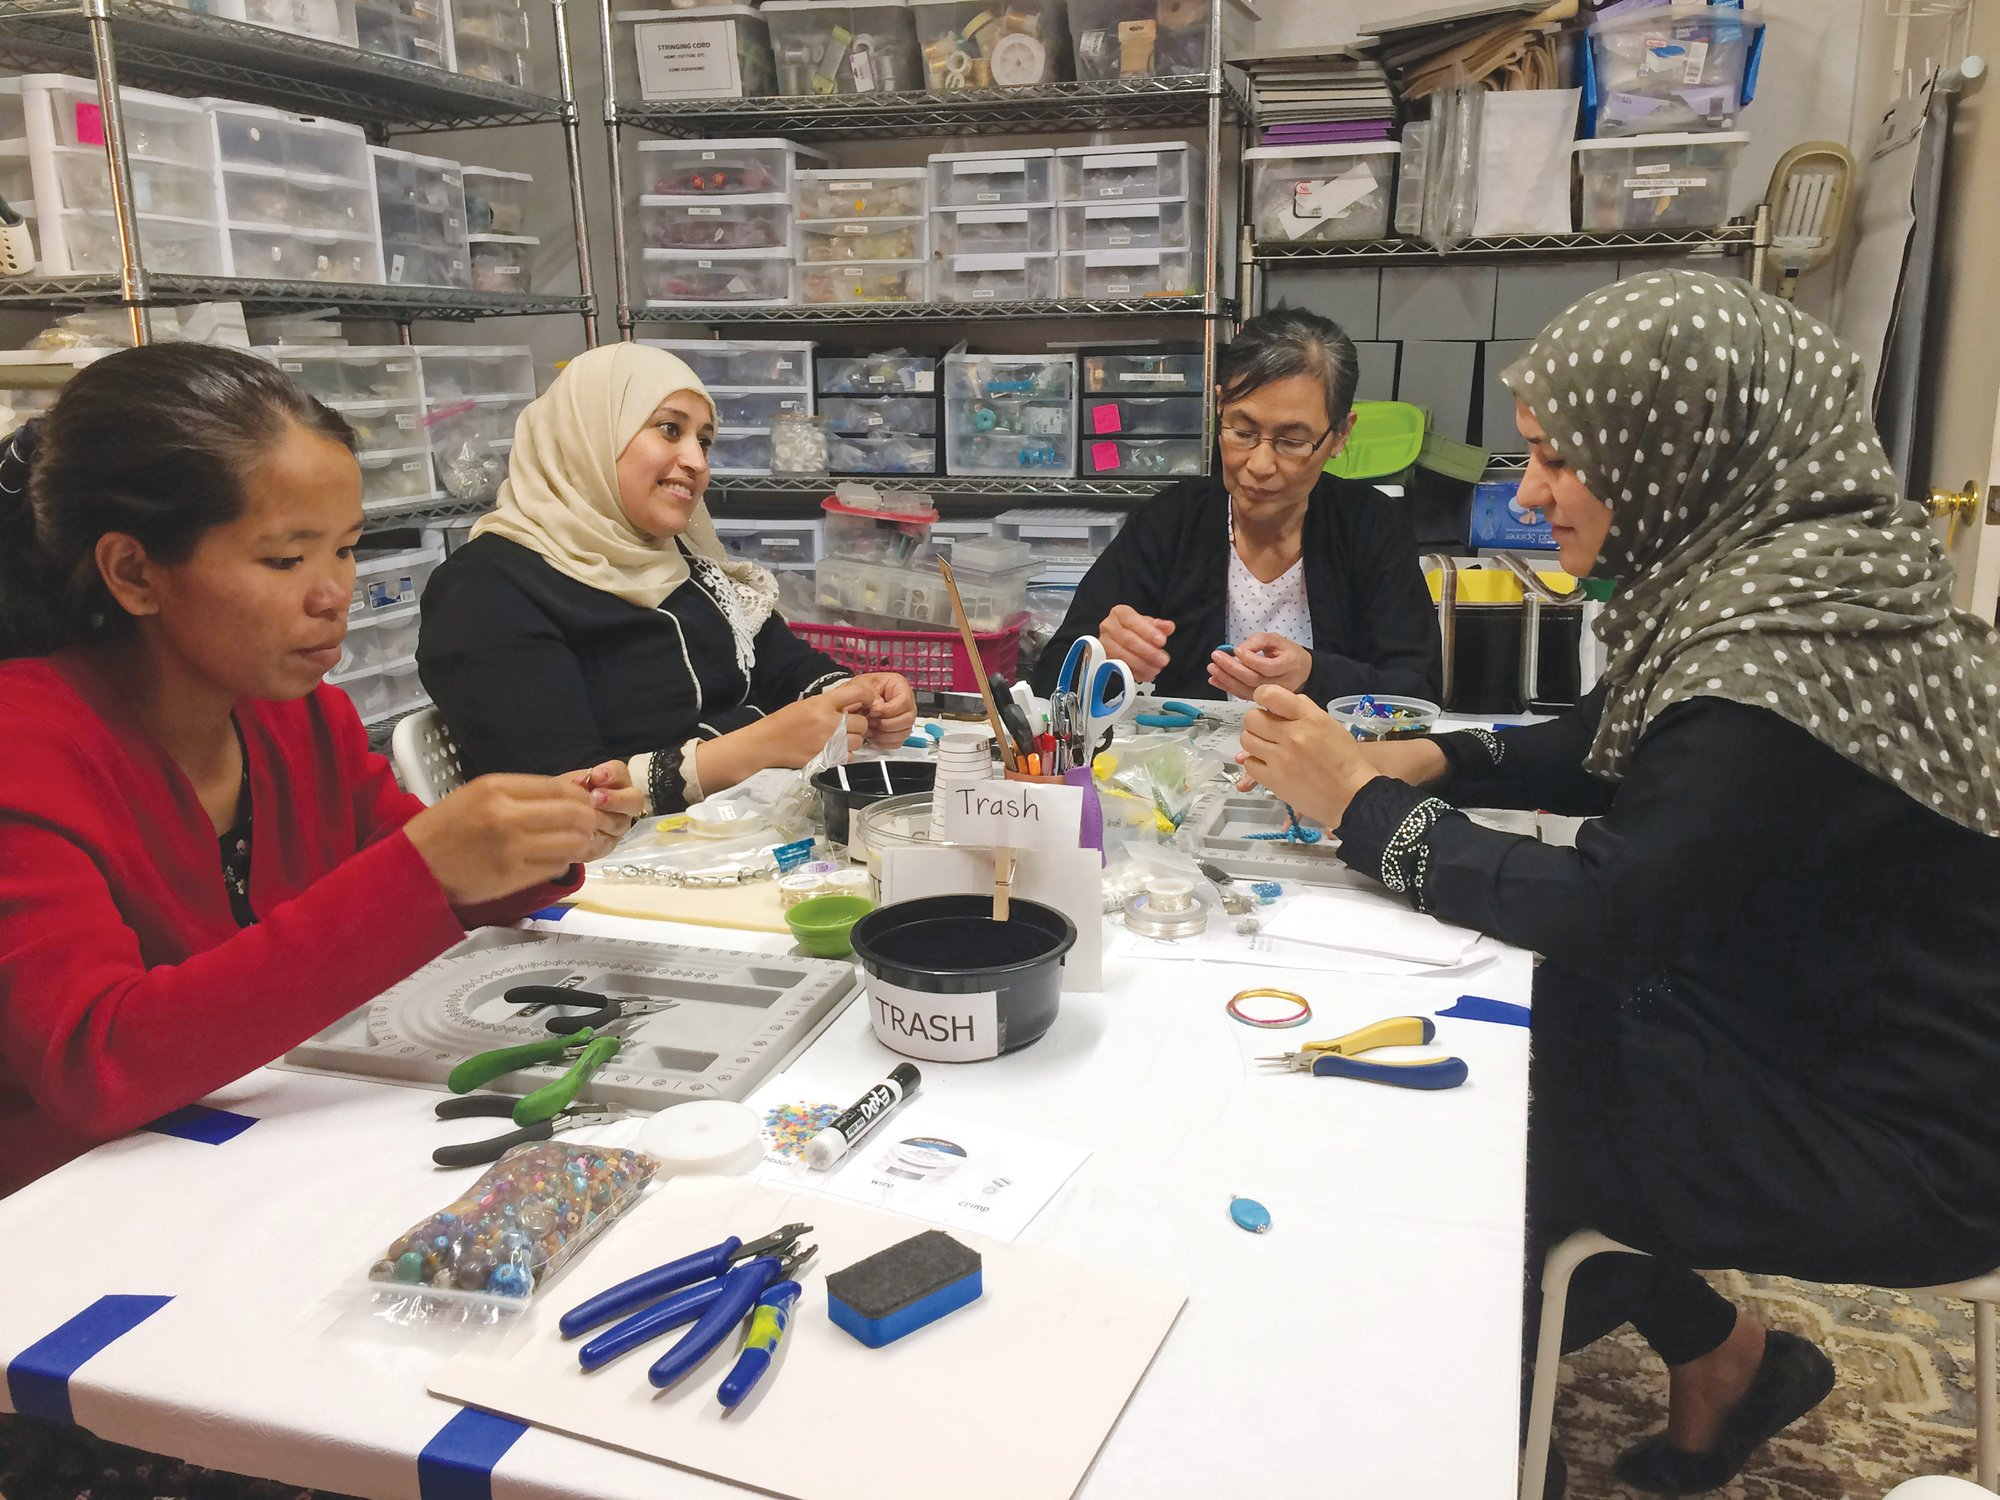 Photos by Sharon L. McCreary via APFrom left, A Little Something participants Khei Hung from Burma, Sabah Almobarak from Syria, Eh Gay Ju from Burma and Mounira Kuru from Syria work through frustration and creative challenges in their first lesson making wire-wrapped necklace pendants. A Little Something not only helps refugees find community, but it also sells the crafts and gives artisans 75% of the earnings.